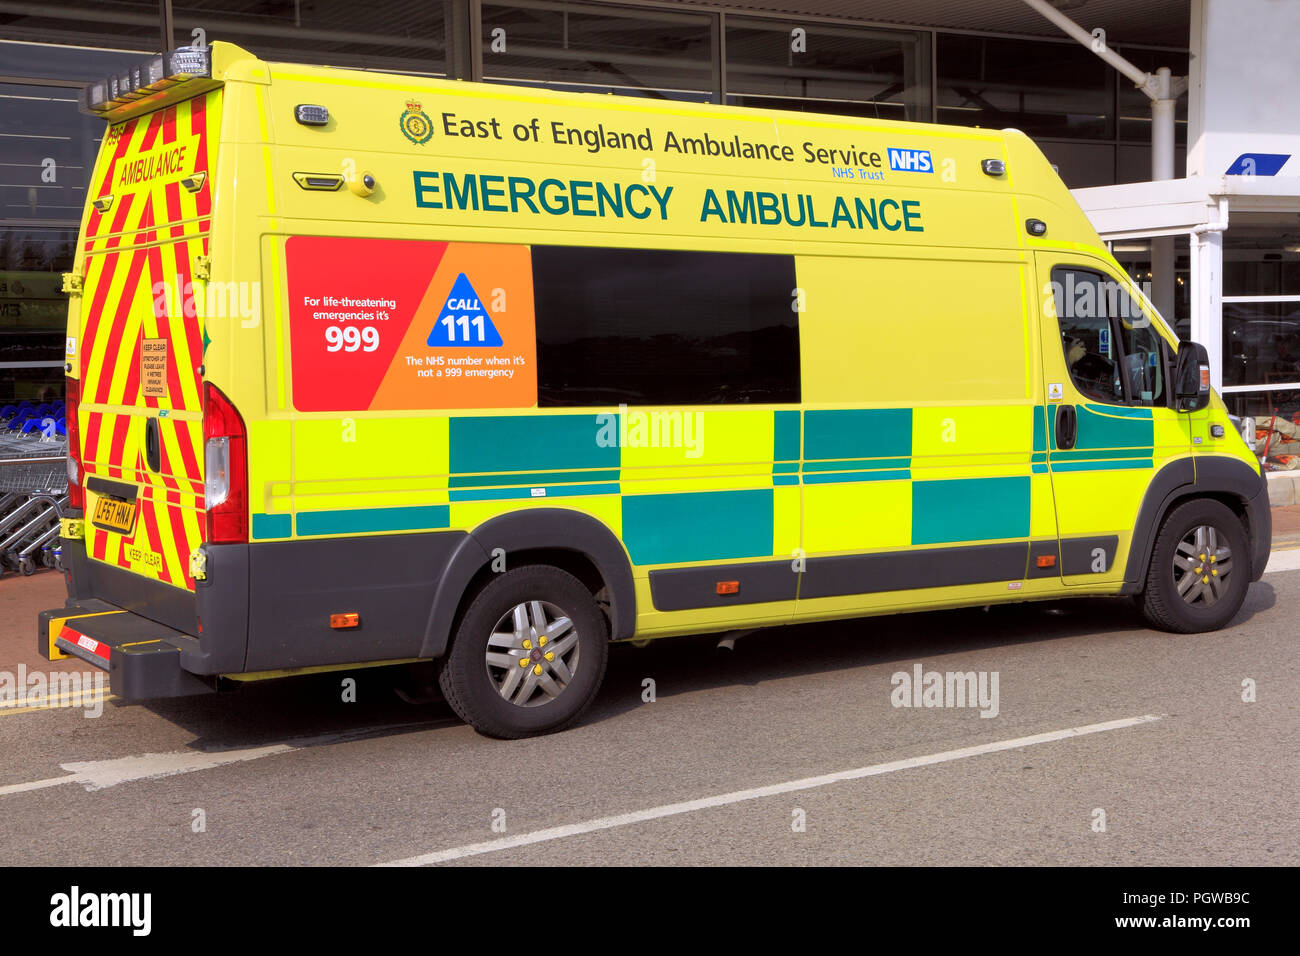 East of England, Emergency, Ambulance, Service, vehicle, National Health Service, NHS, Norfolk, UK - Stock Image